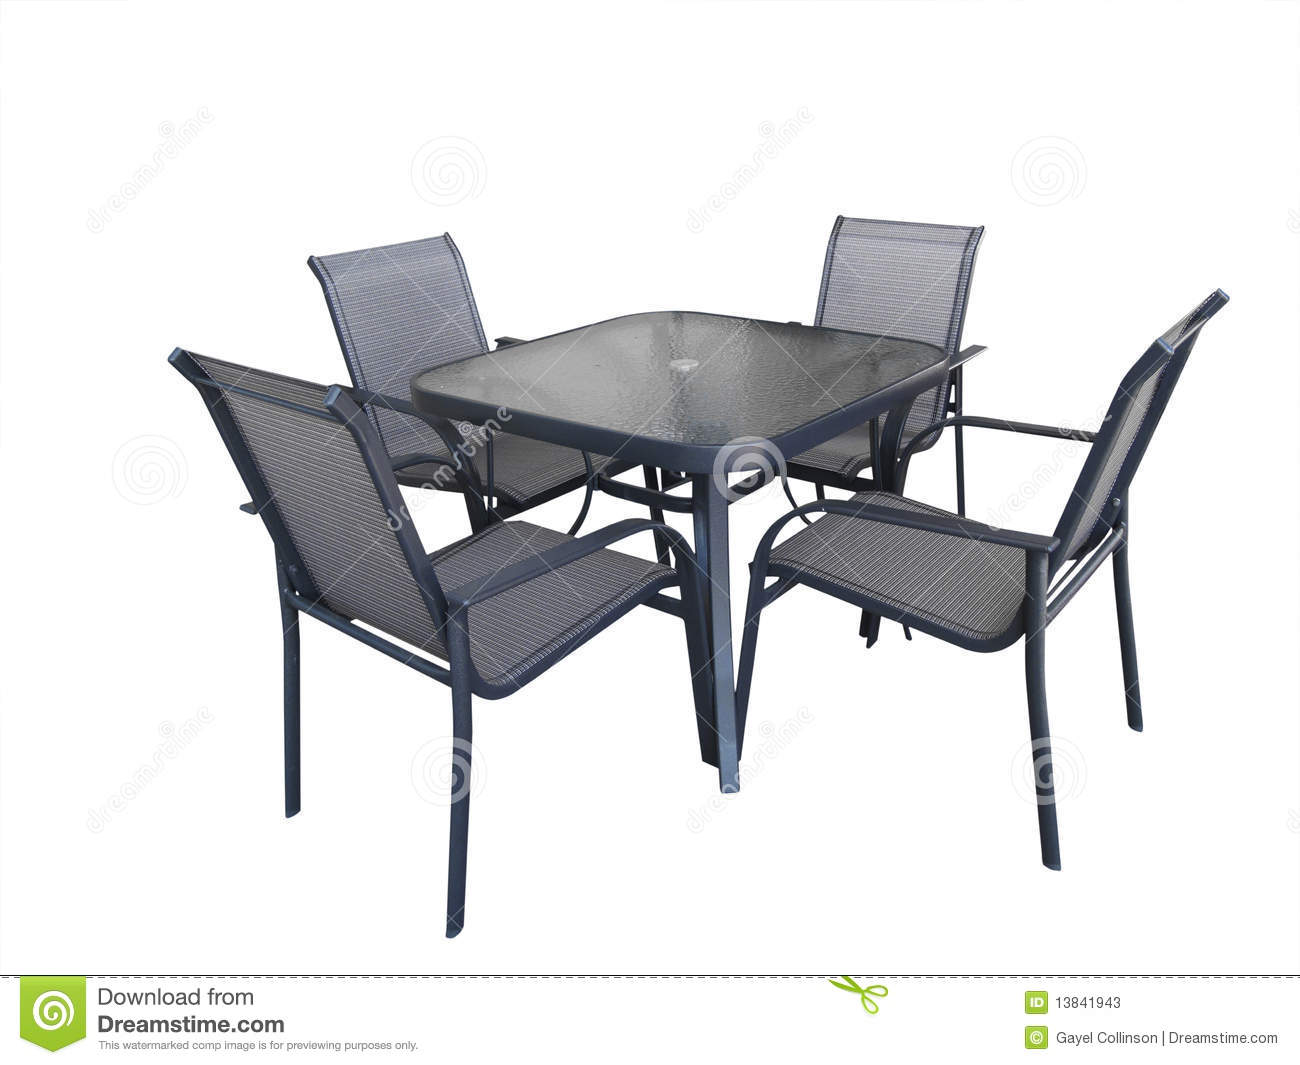 Outdoor glass table and chairs stock photos image 13841943 for Outdoor patio table and chairs